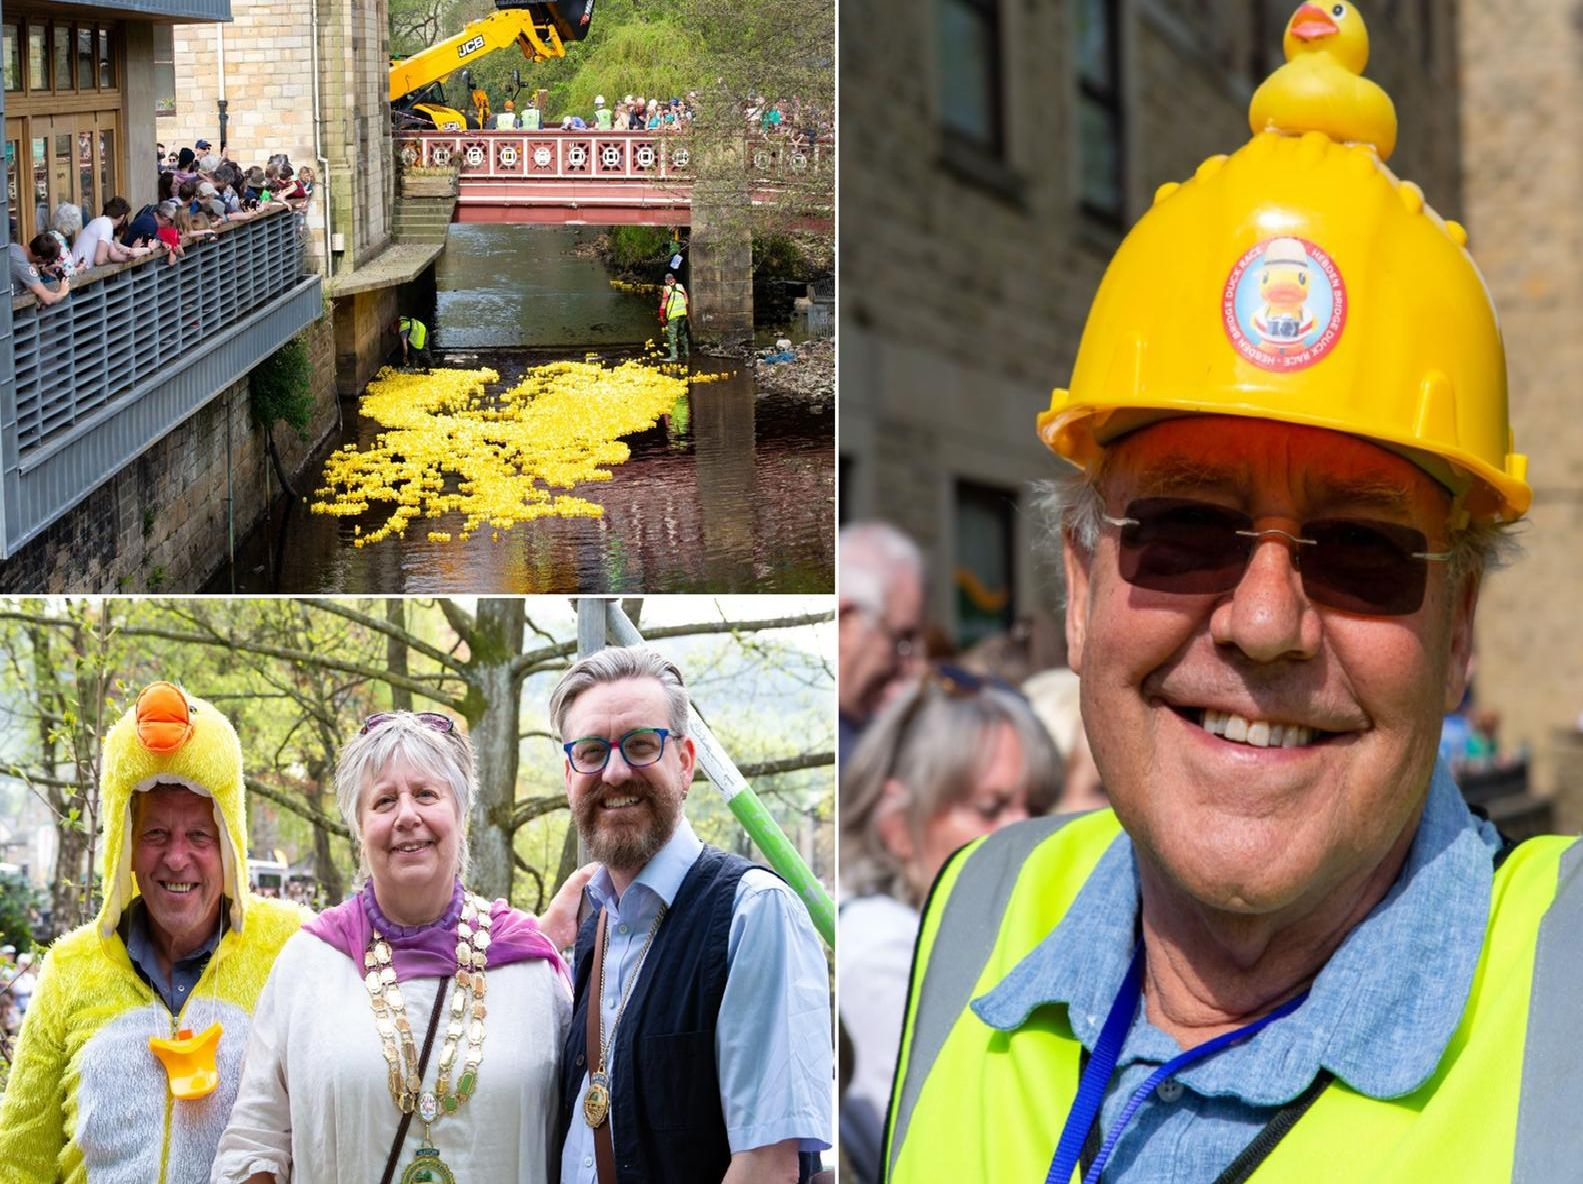 The annual Hebden Bridge Duck Race